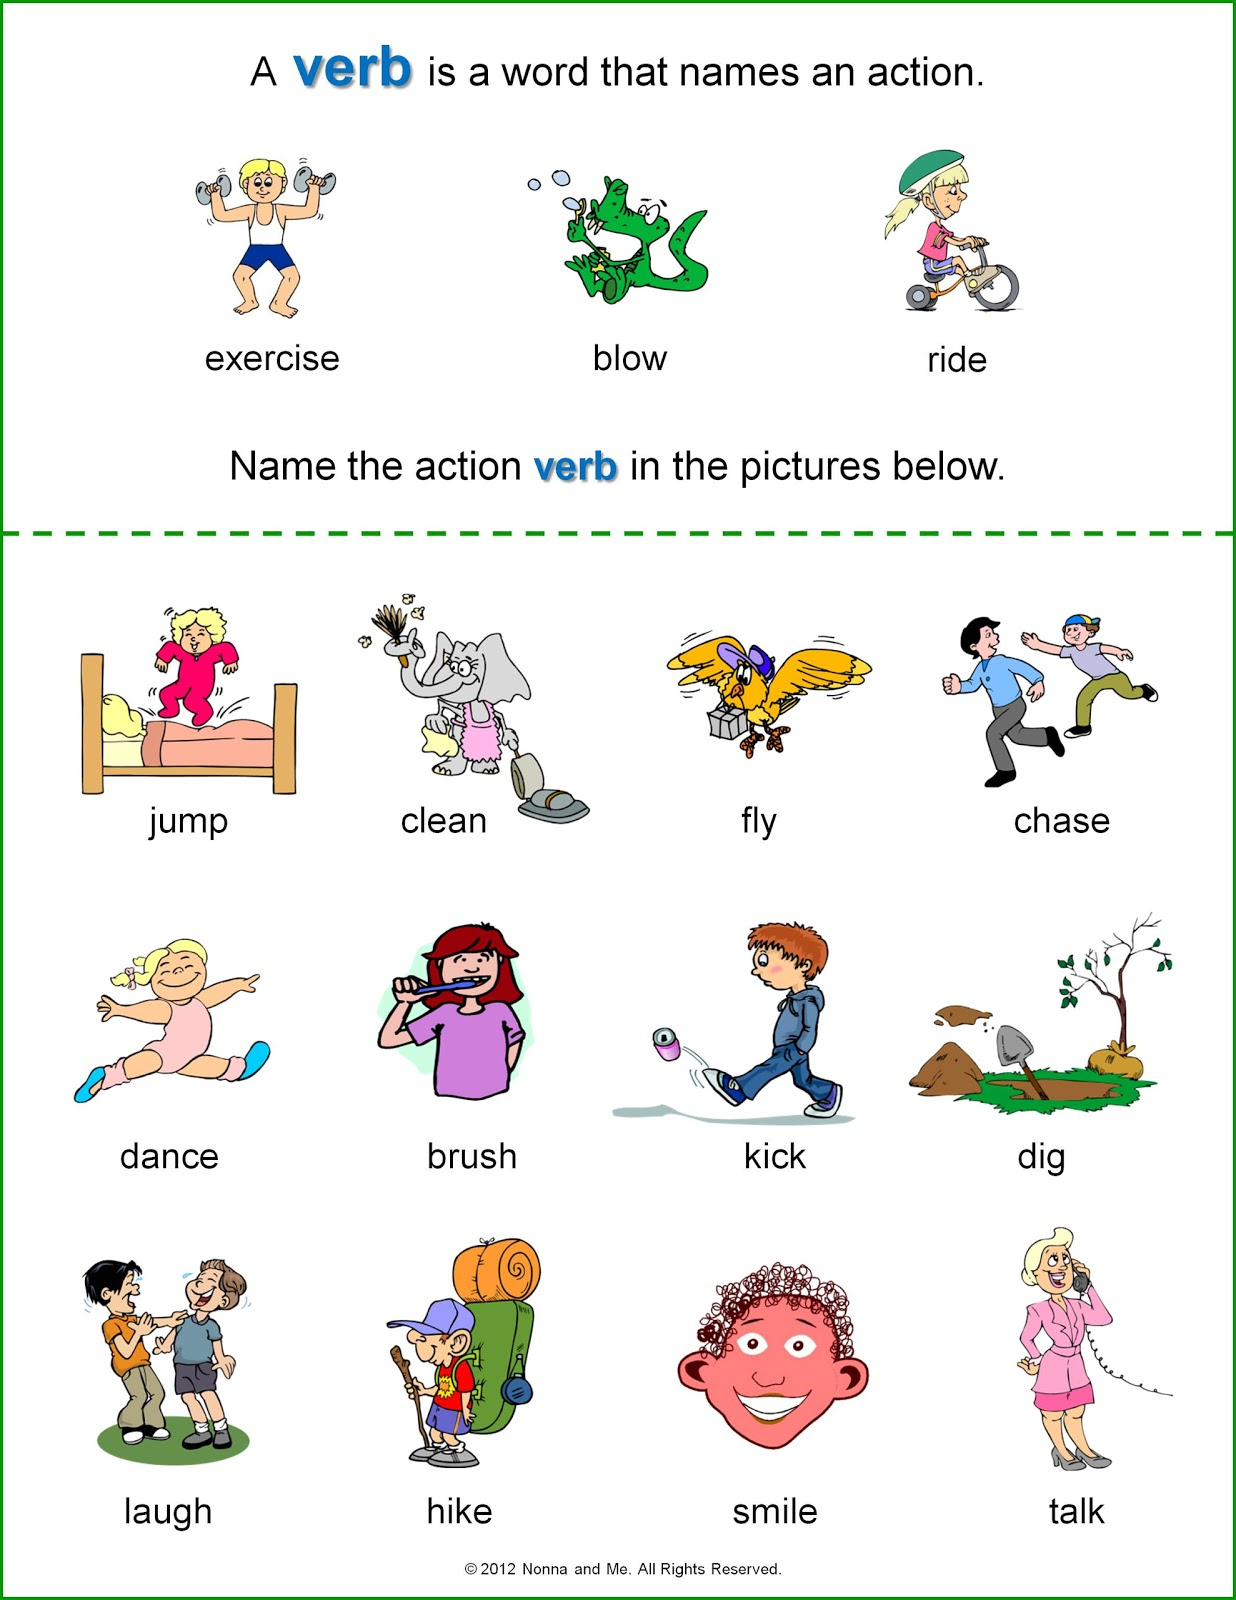 action word verbs worksheets bwg bangkok pics of action word verbs worksheets